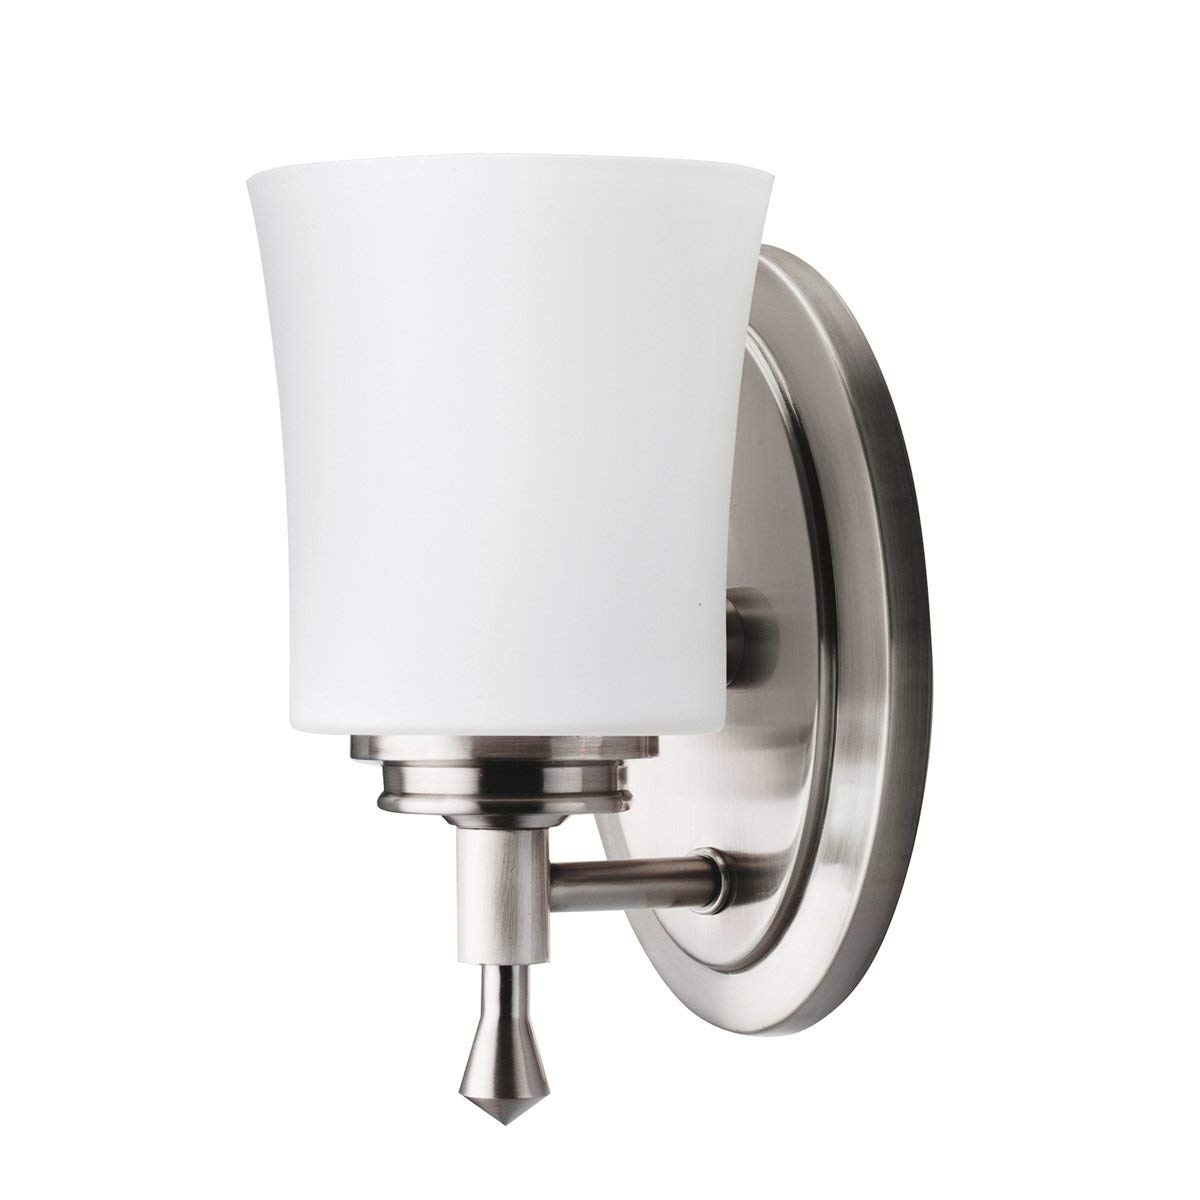 Kichler Wharton Wall Sconce Light Brushed Nickel Vanity Lighting With Regard To Well Known Outdoor Lanterns At Bunnings (View 17 of 20)